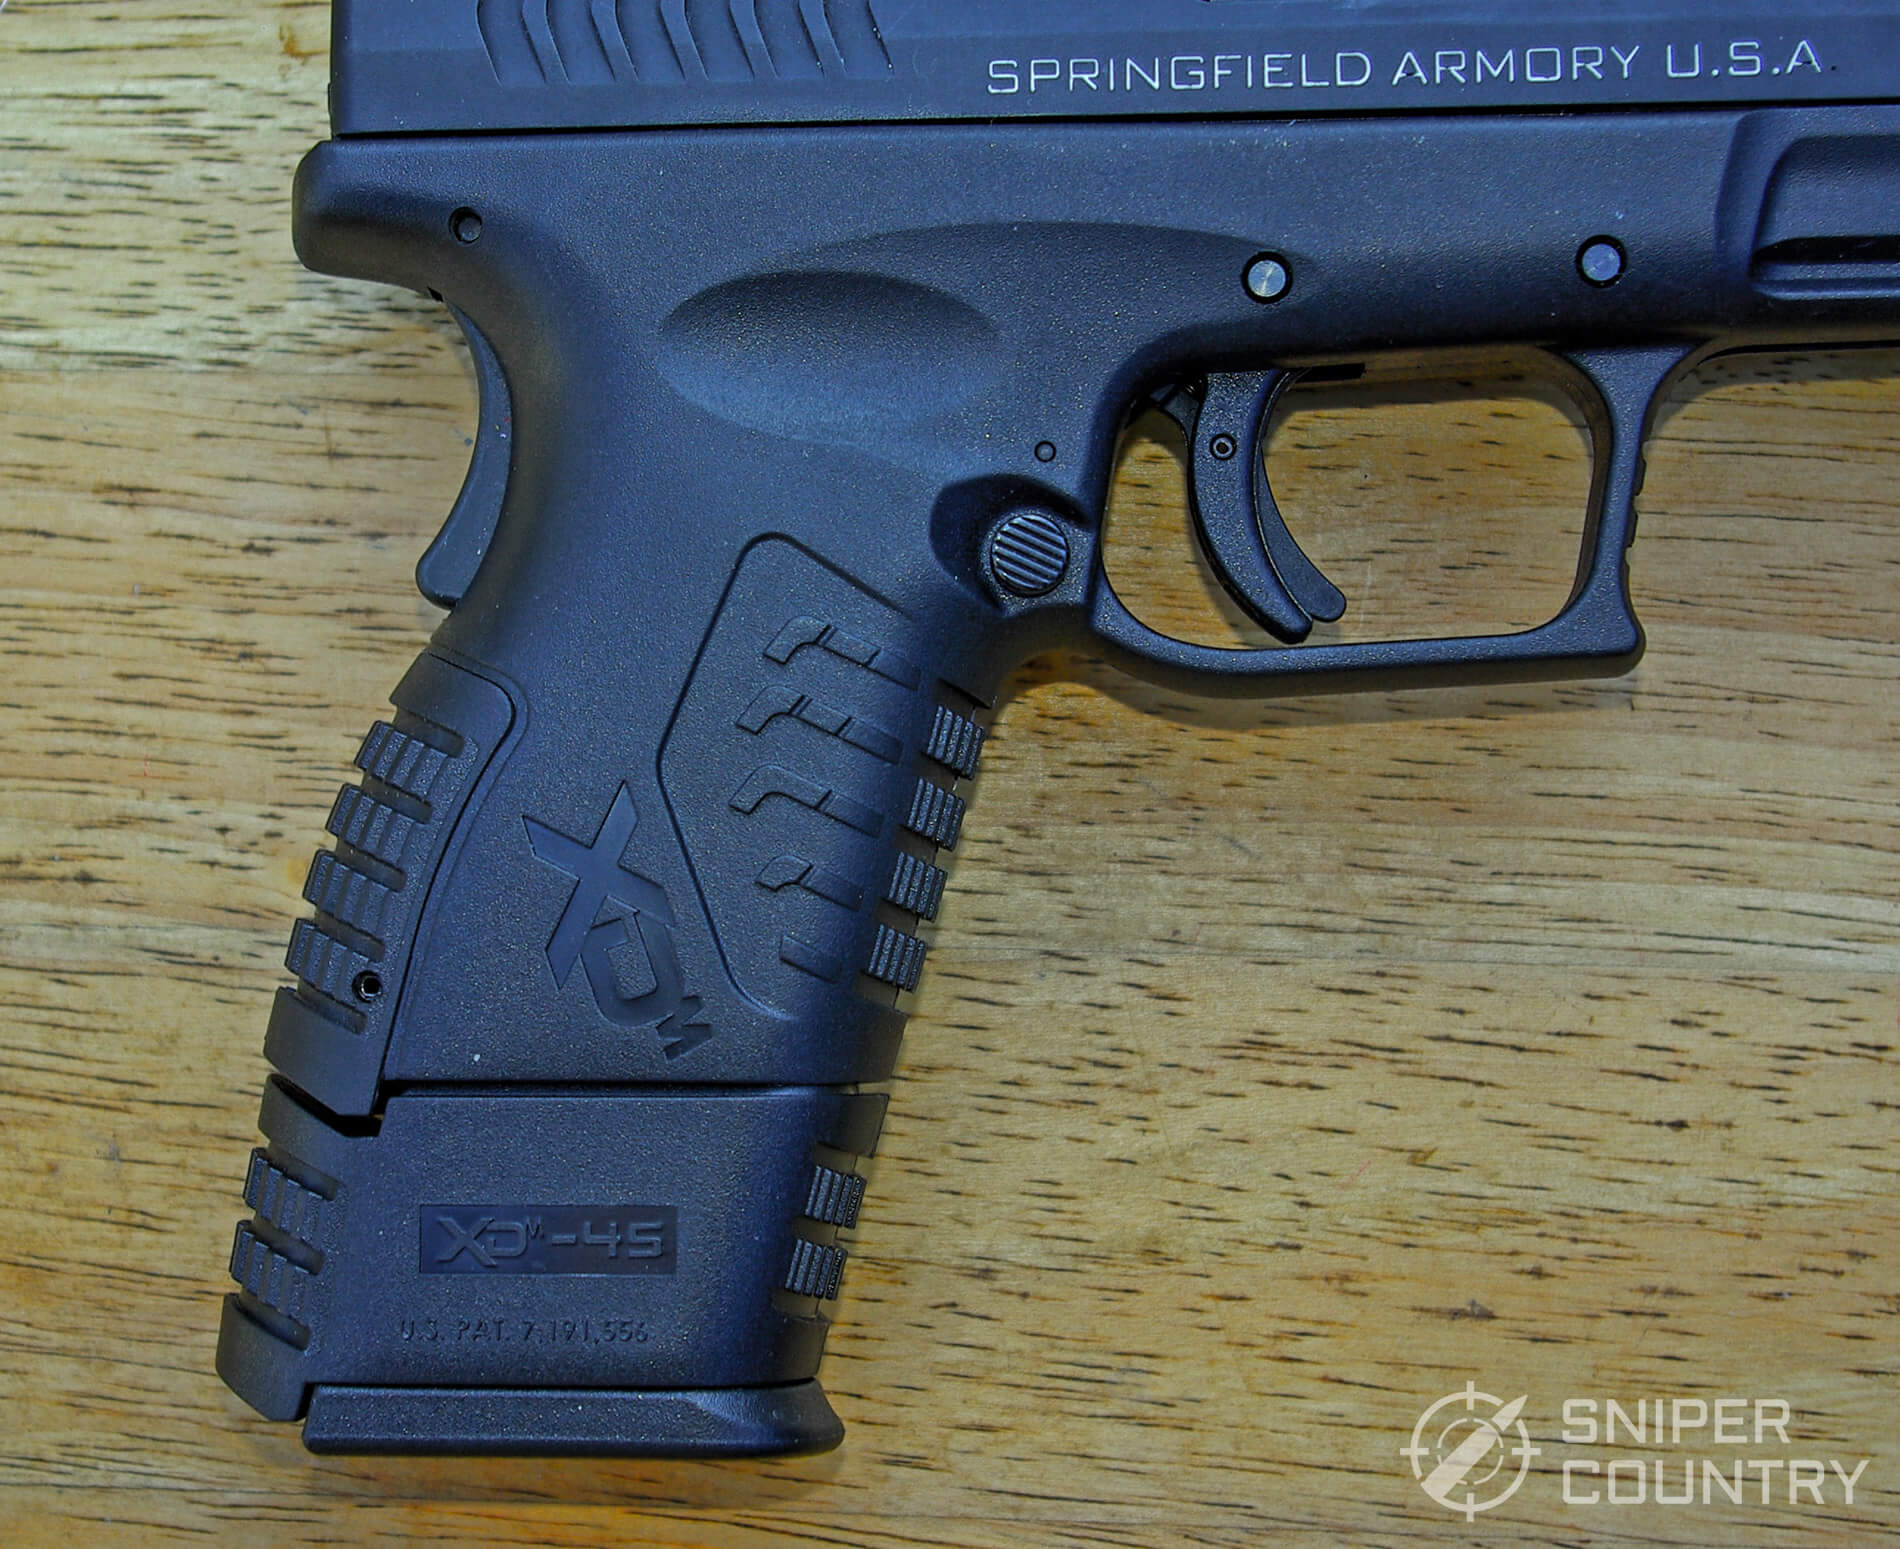 Springfield XDM 3.8 Compact Grip with Extended Magazine